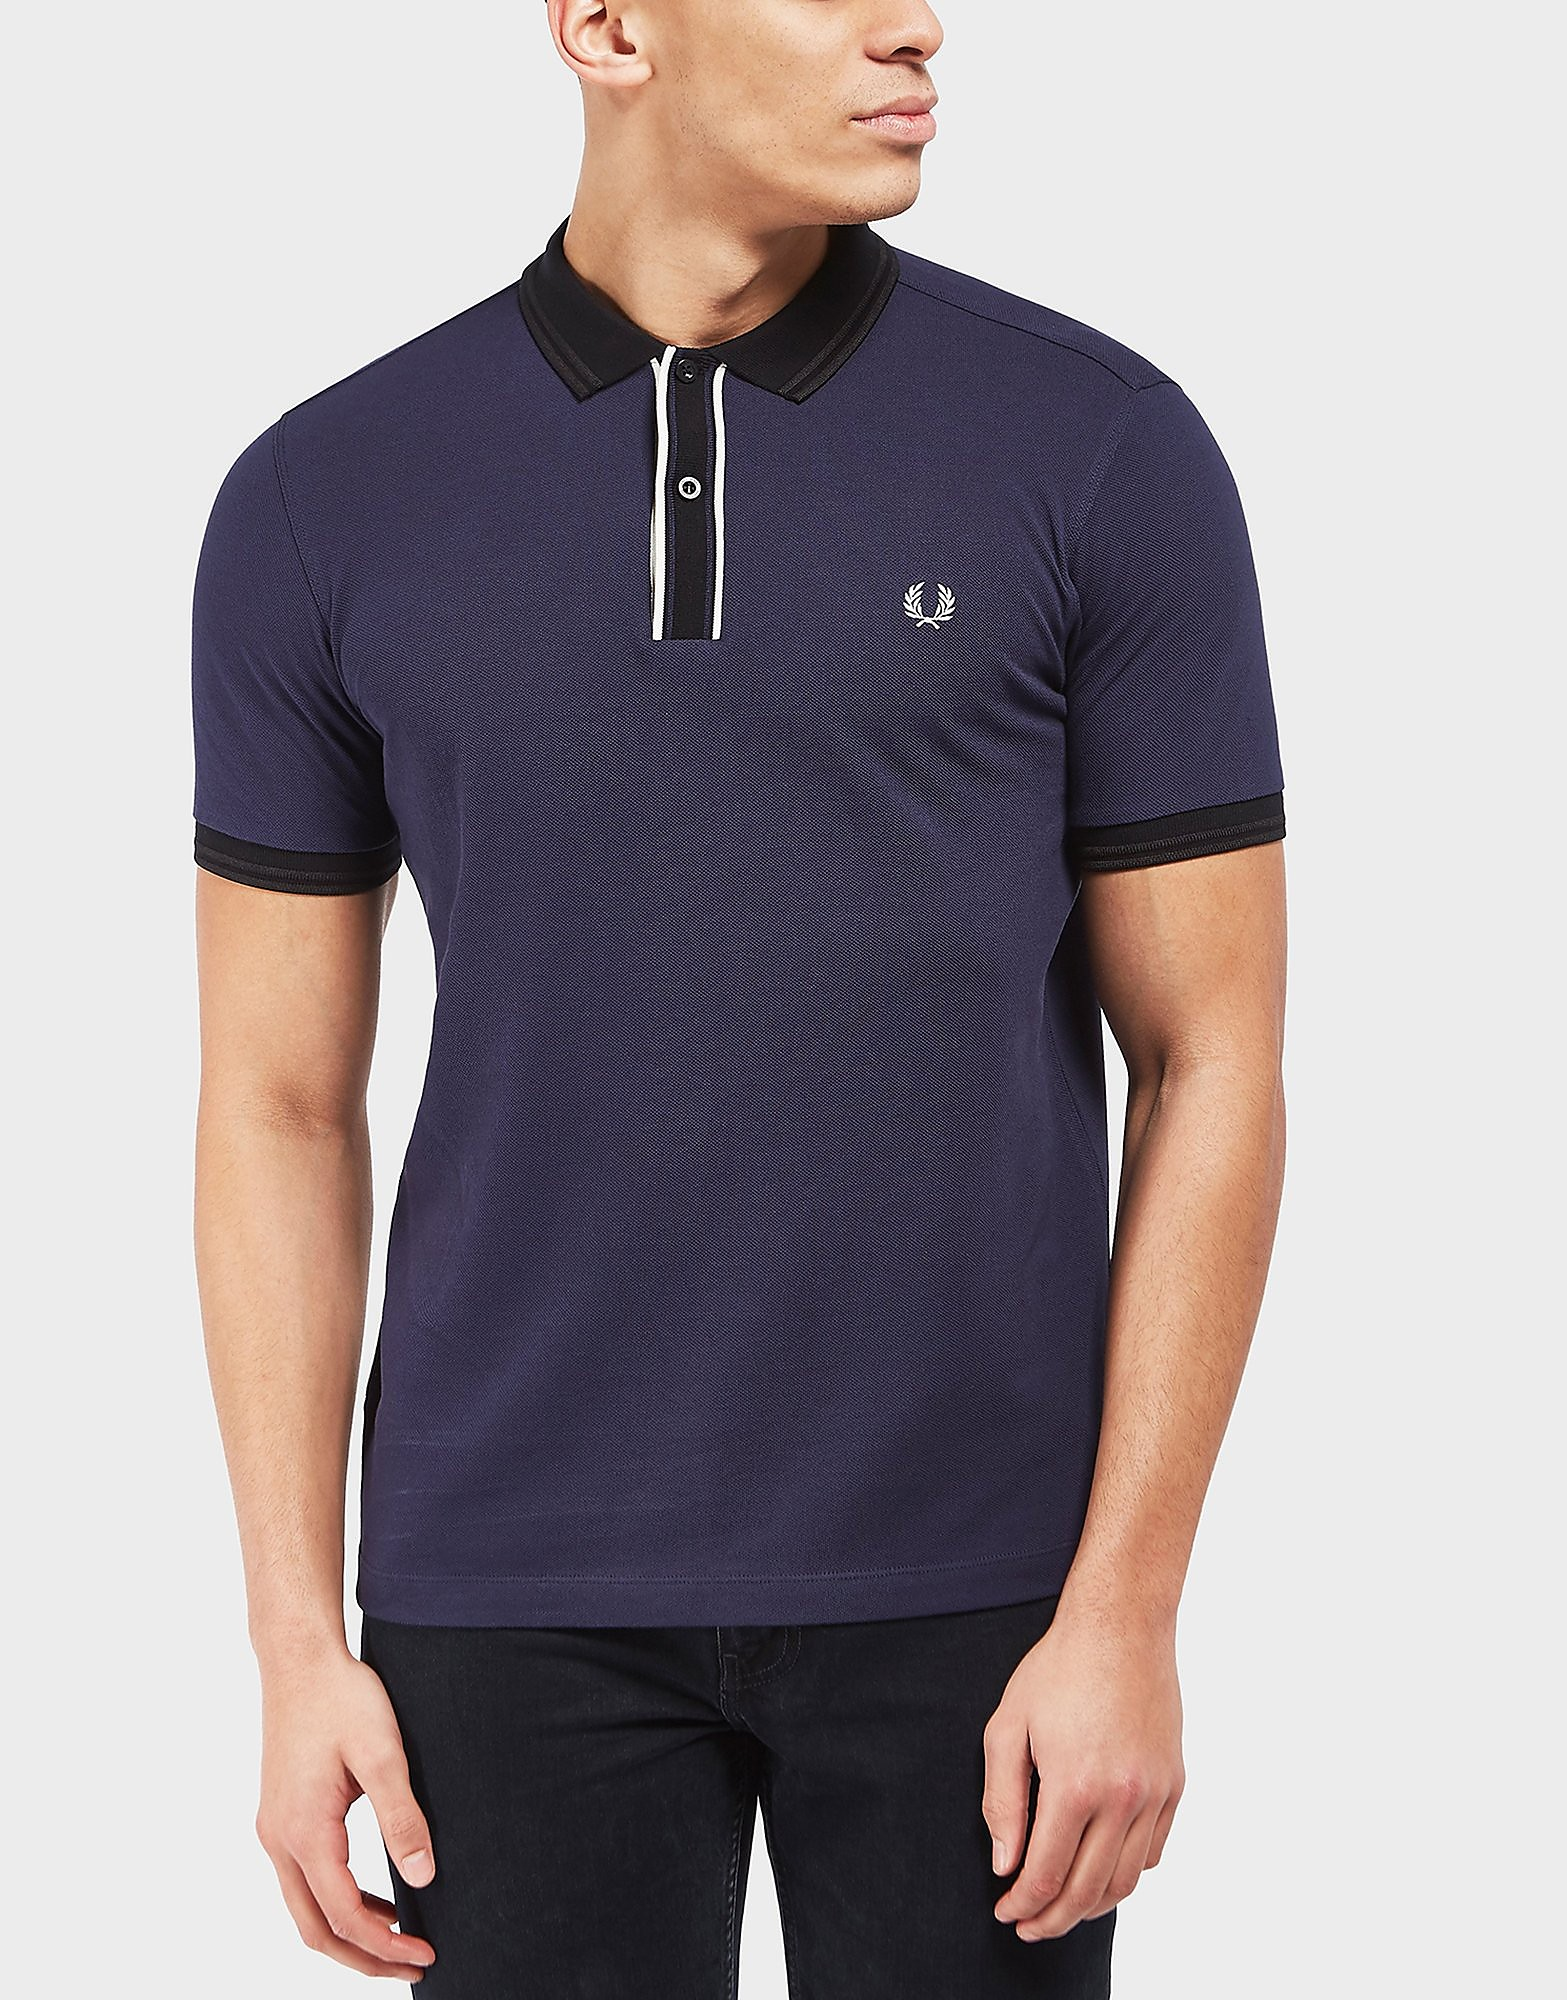 Fred Perry Tipped Placket Short Sleeve T-Shirt